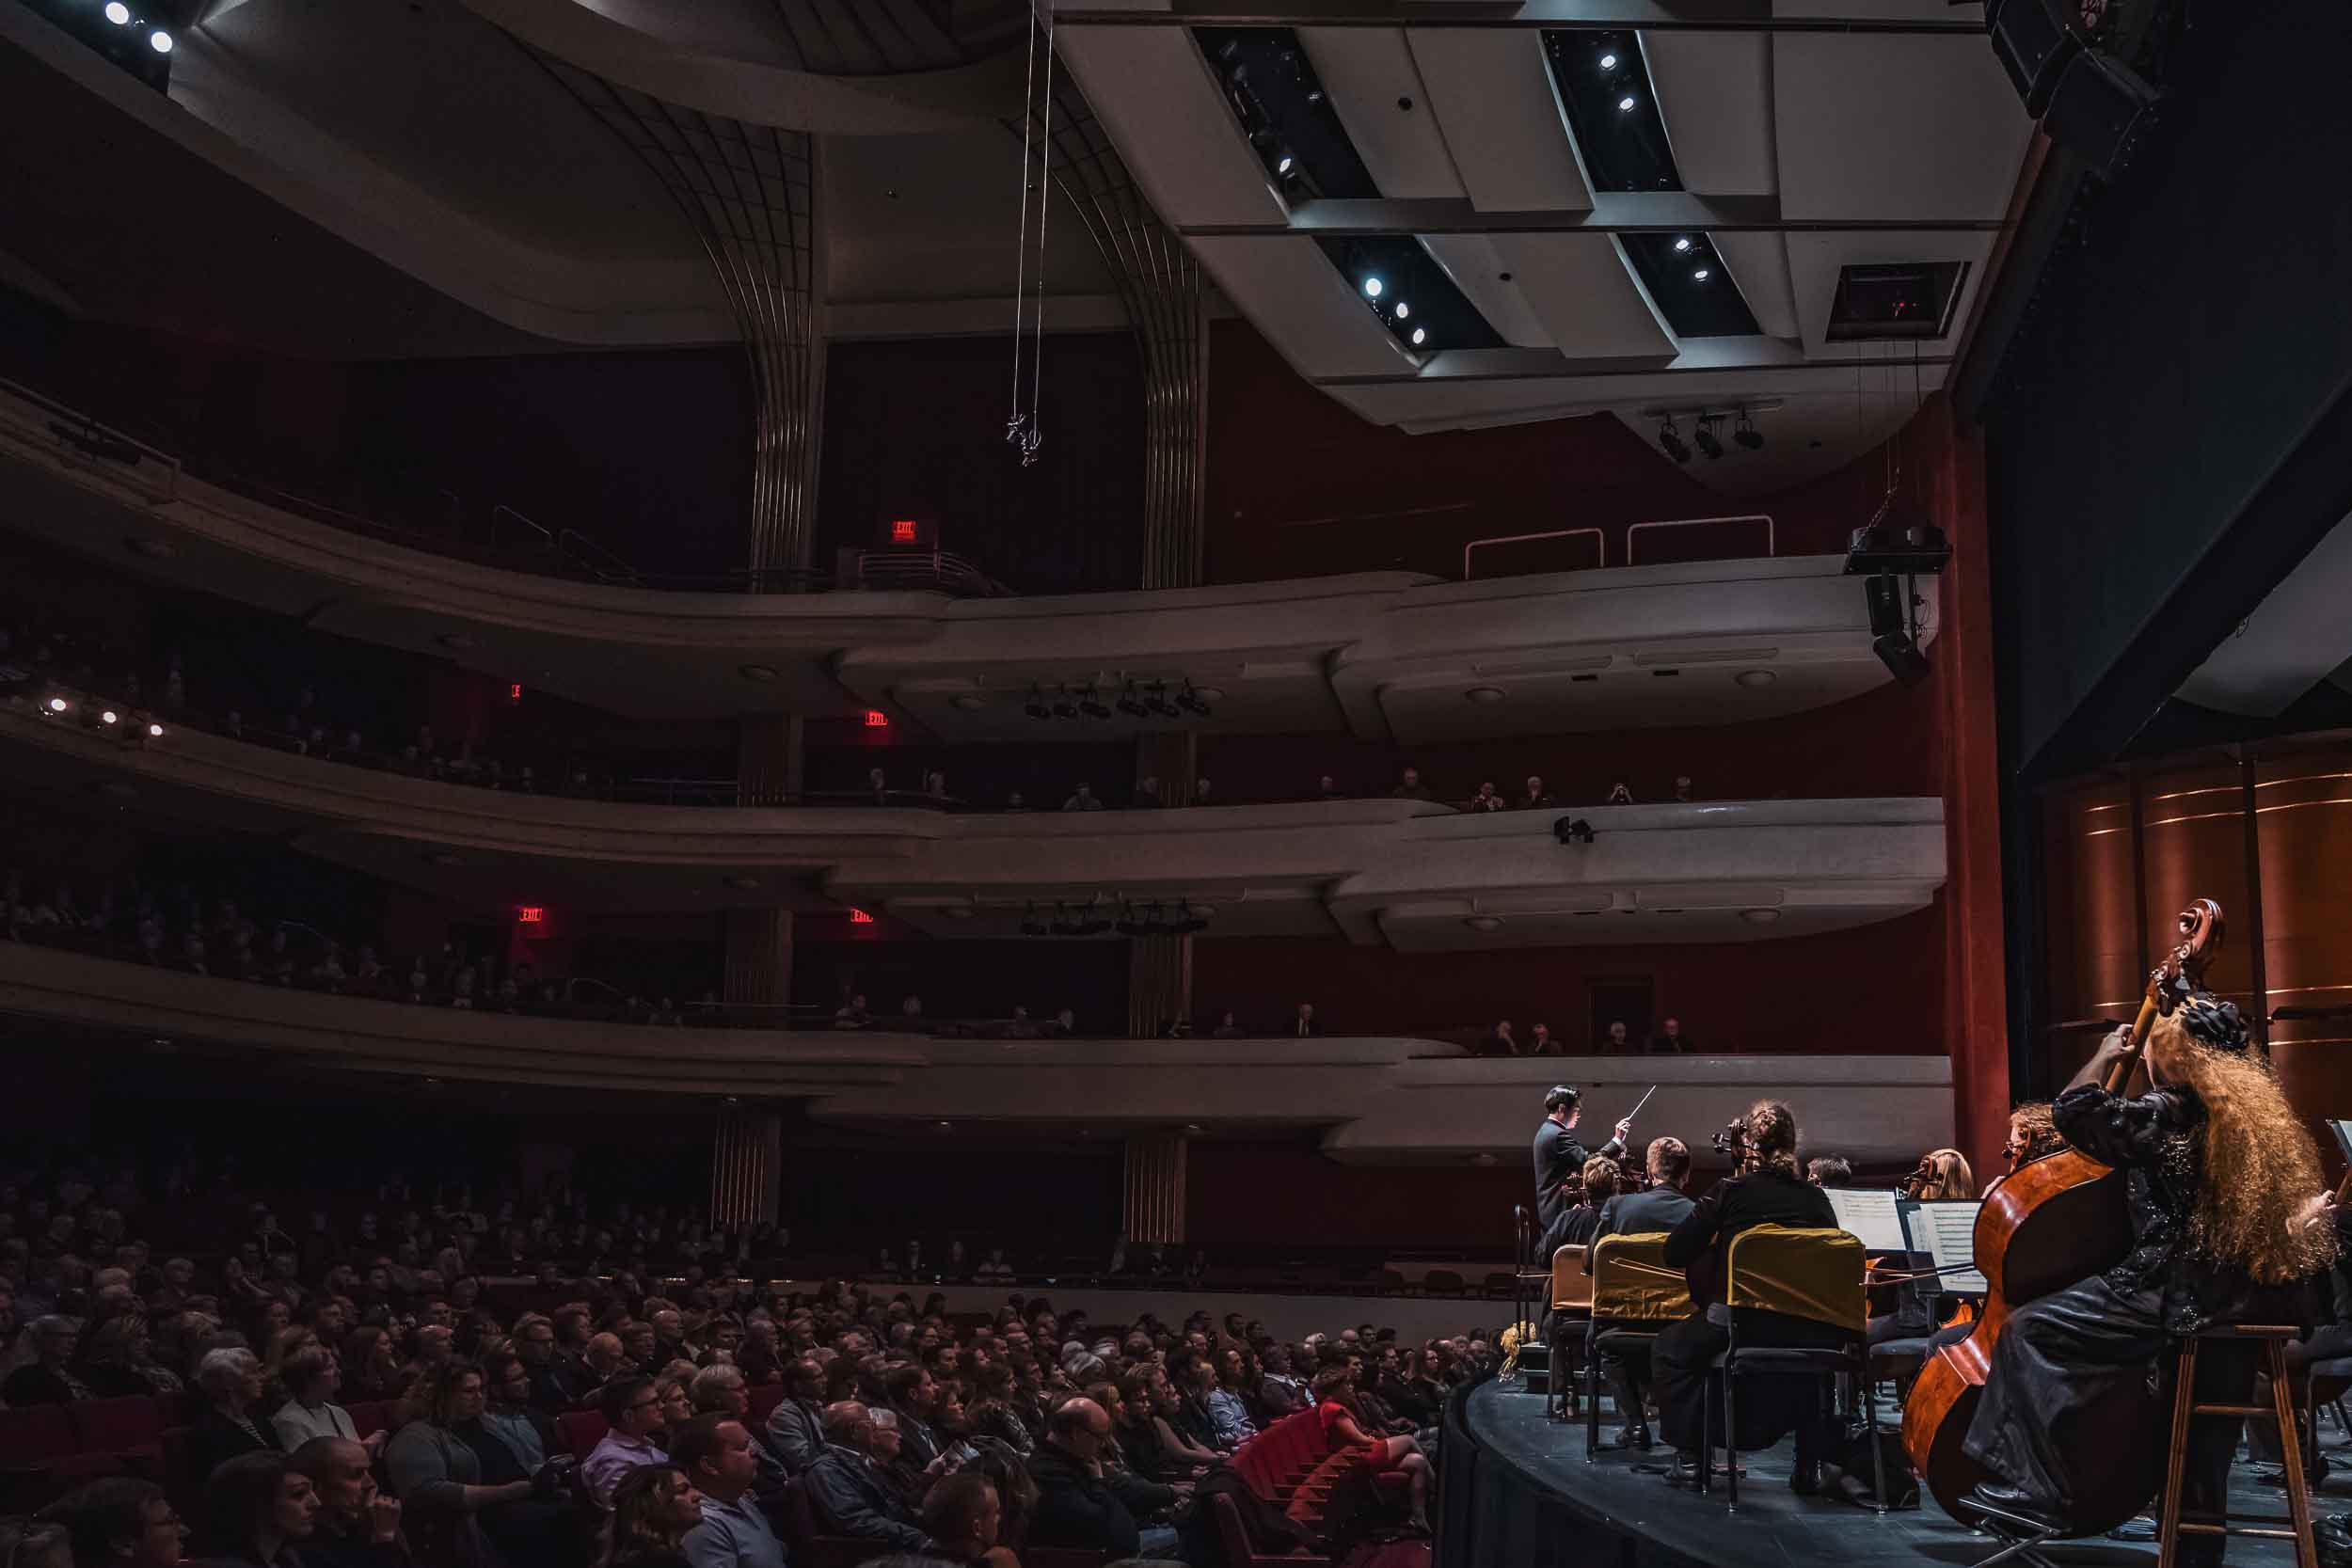 fox-valley-symphony-orchestra-business-commercial-professional-photographer-graham-images-washatka-wisconsin-appleton-green-bay-003-5506-blog.jpg